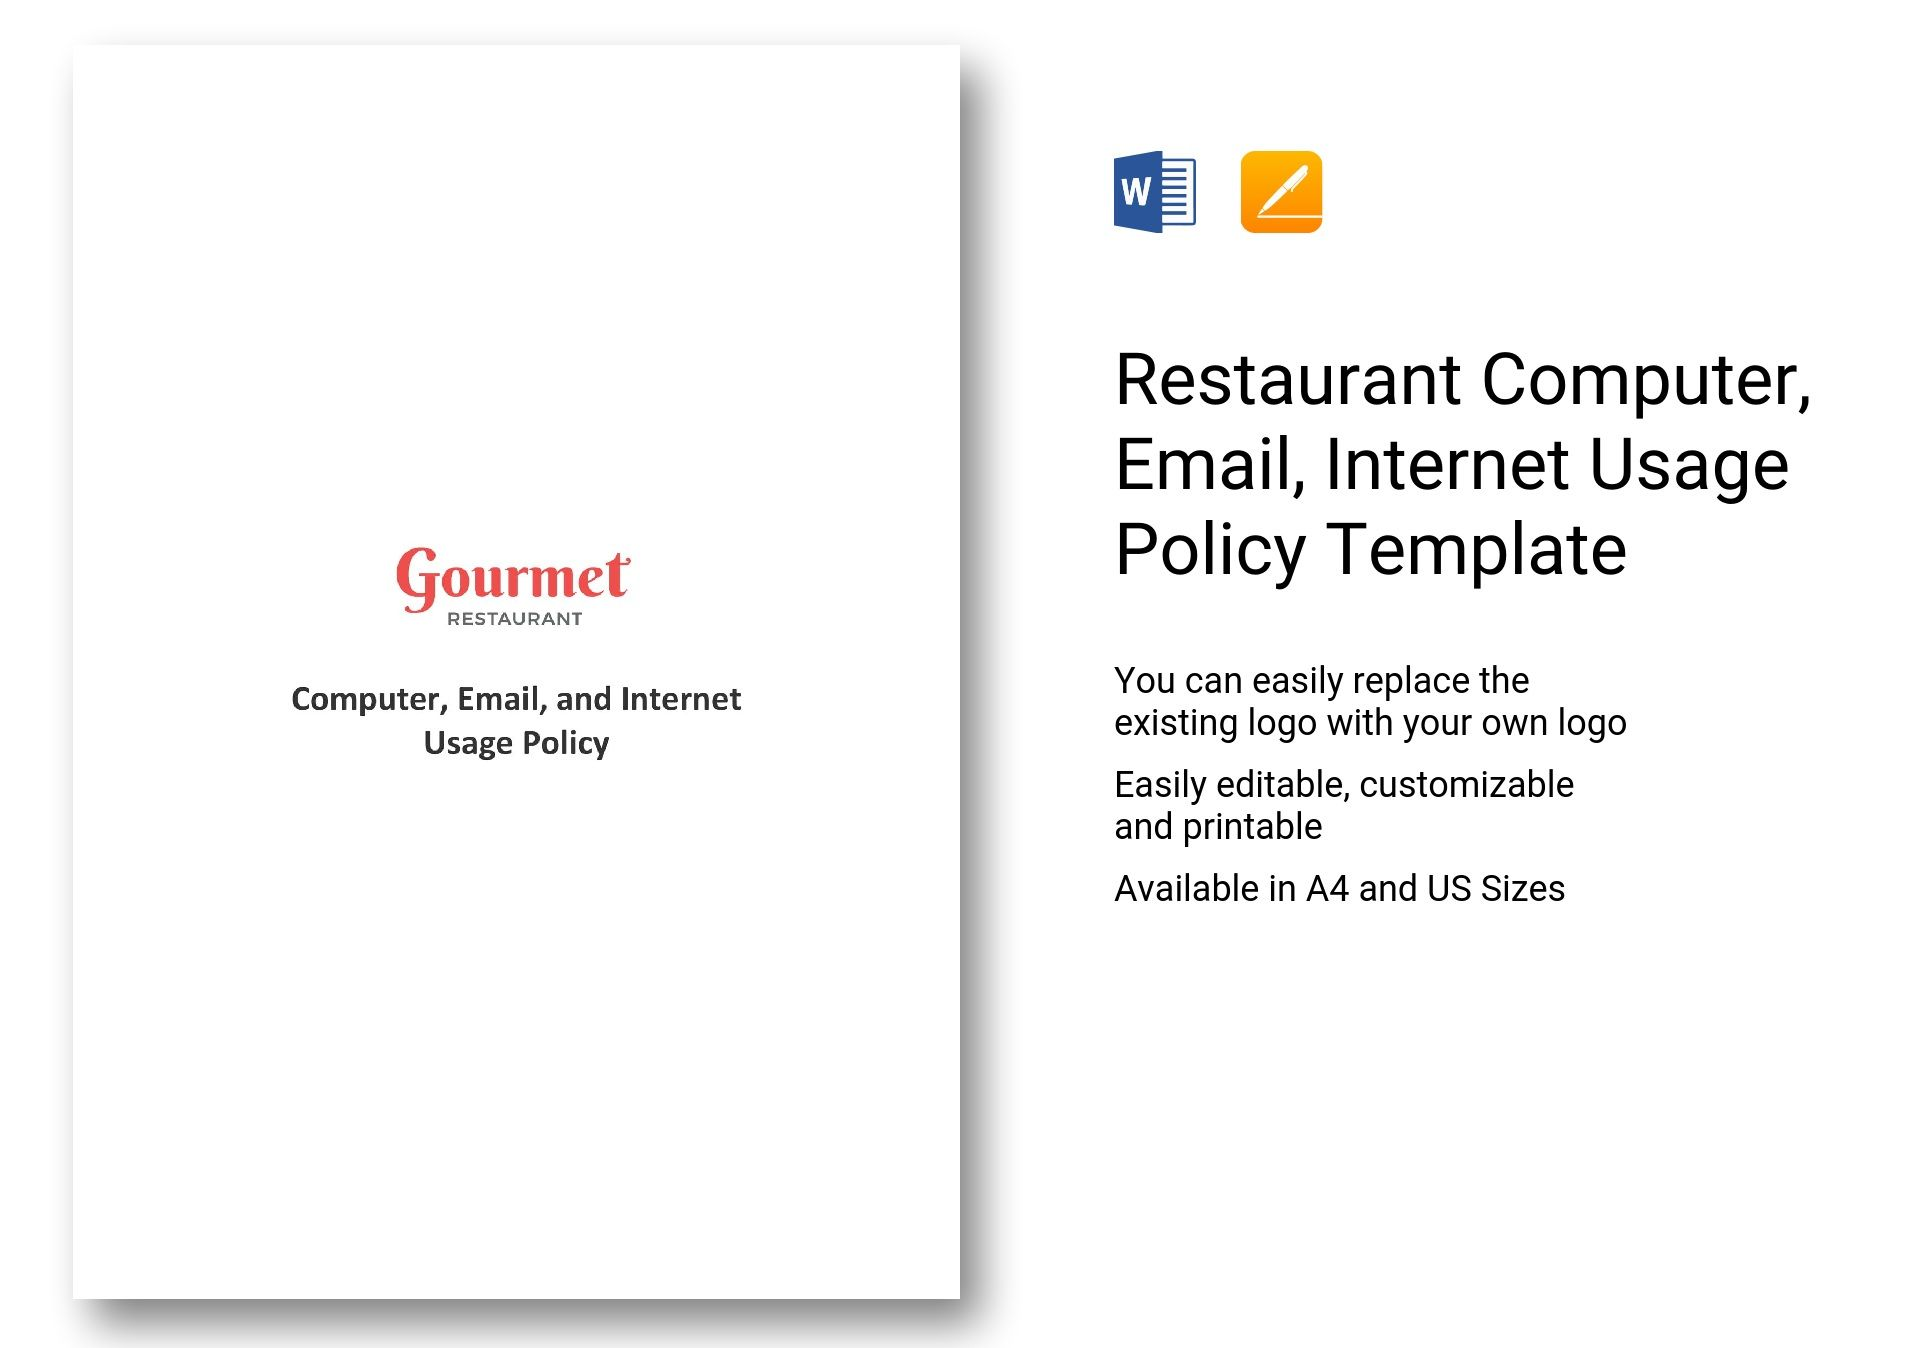 Restaurant Computer Email Internet Usage Policy